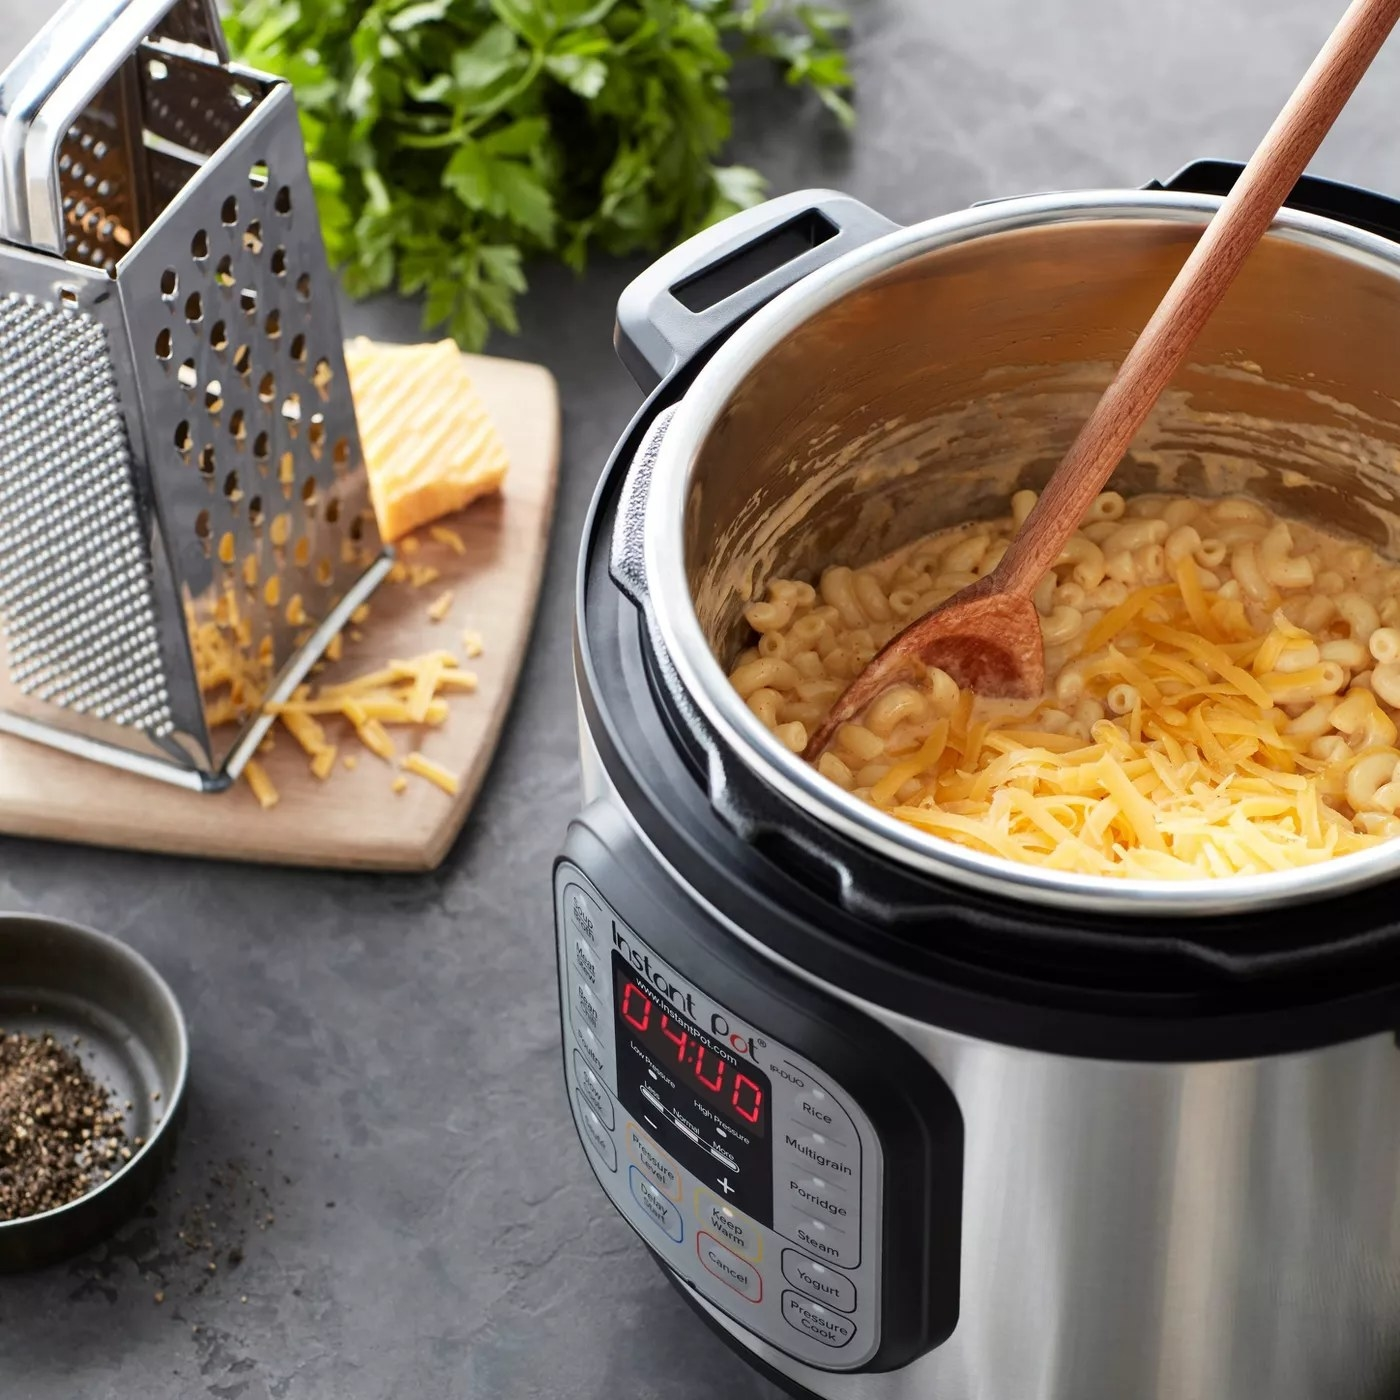 The Instant Pot pressure cooker